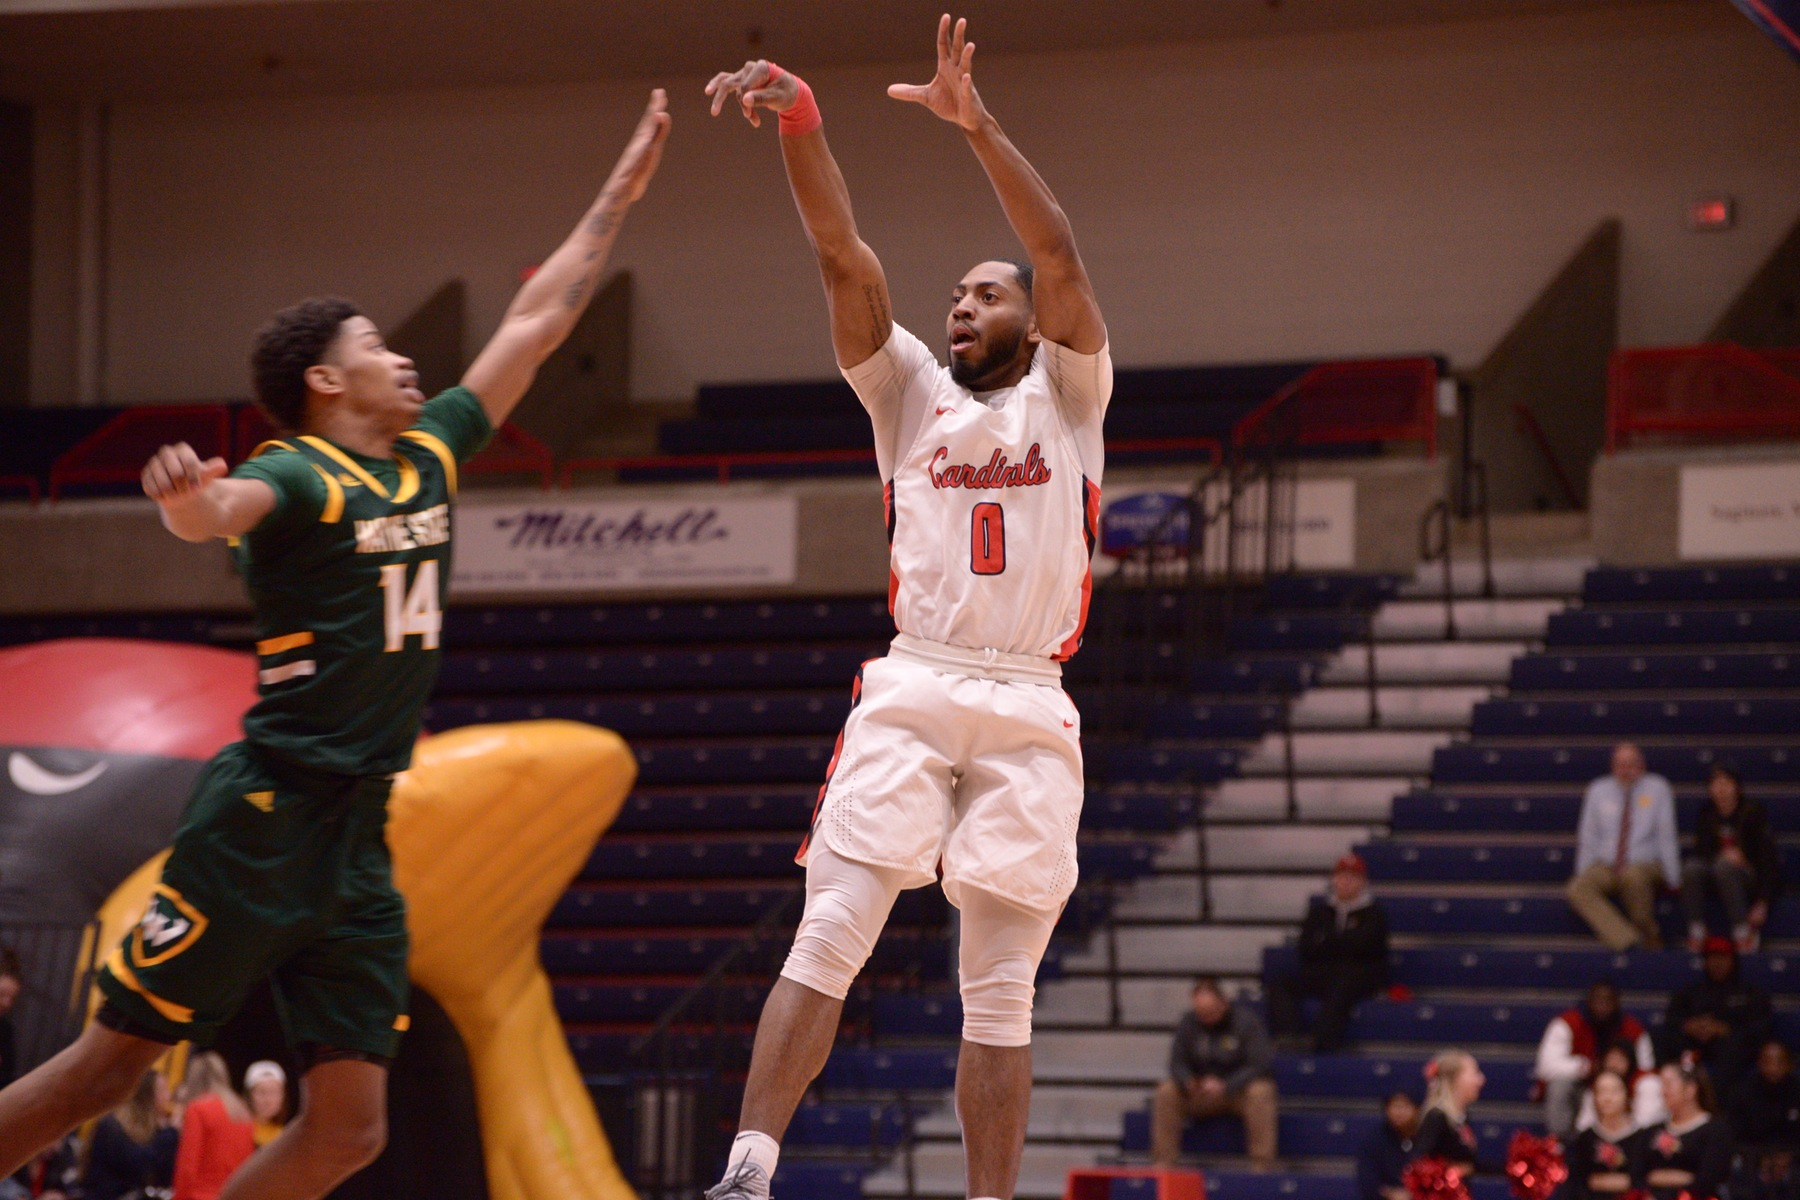 Hoskins nets 28 points; hits game-winner in SVSU's 59-56 win over #18 Ashland